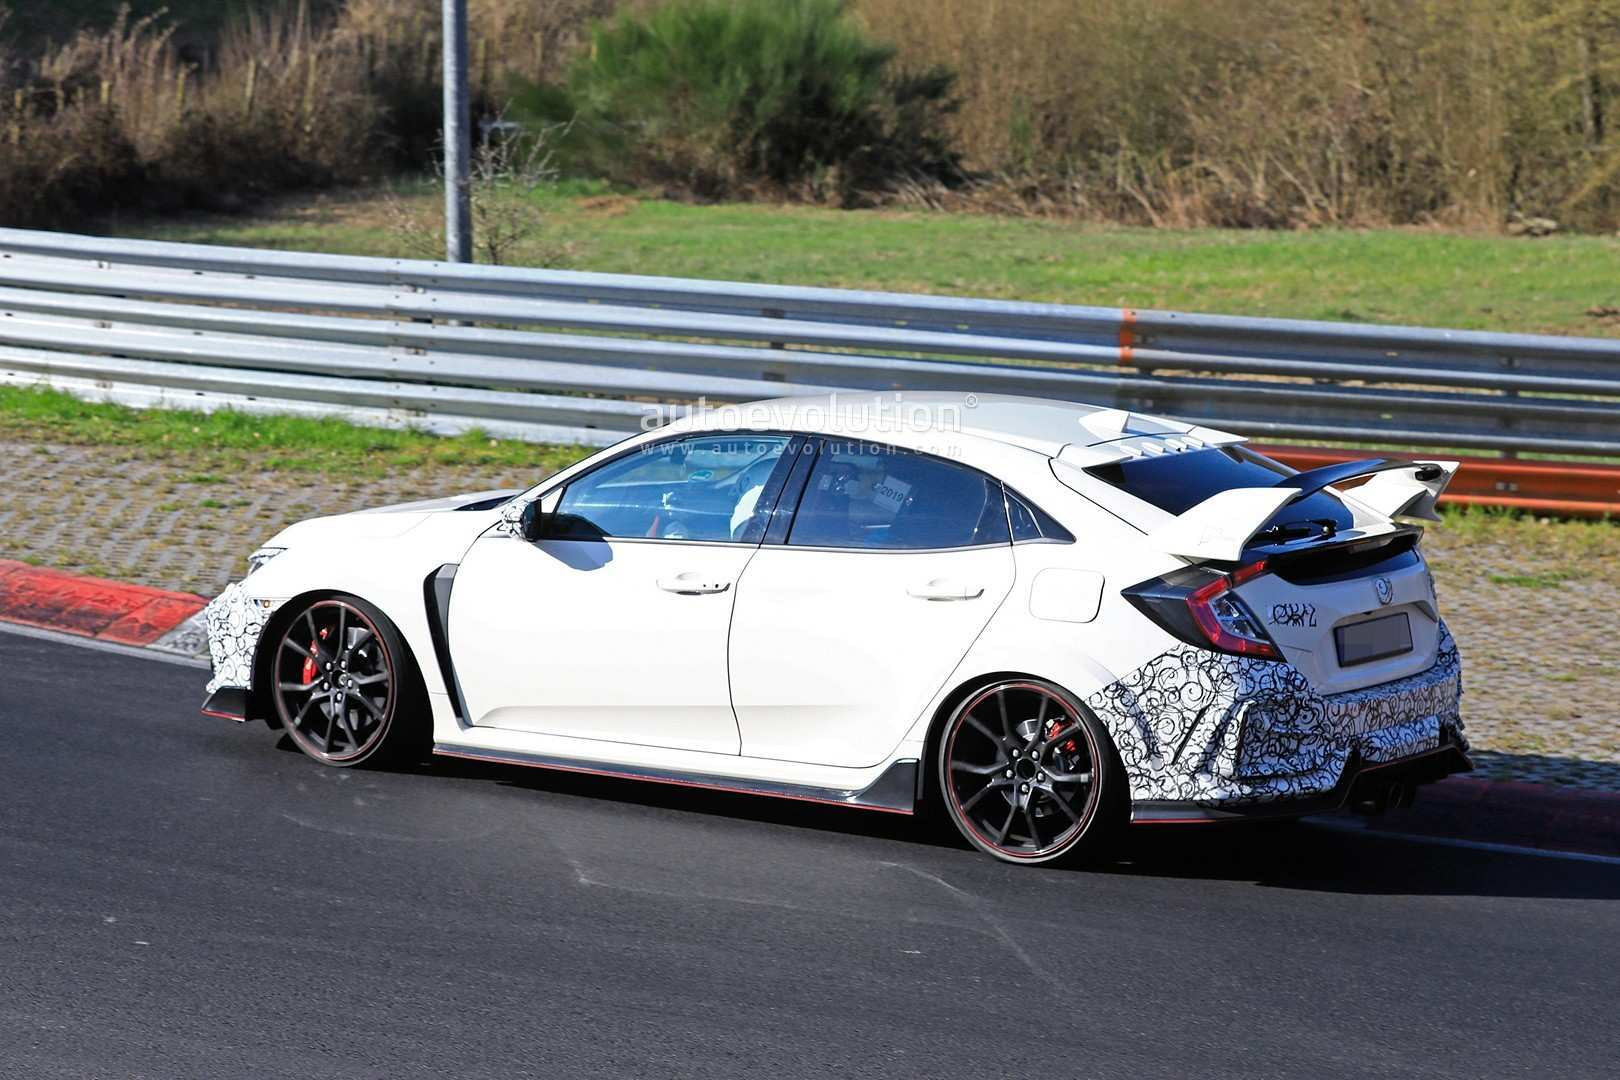 61 All New 2020 Honda Civic Type R New Review